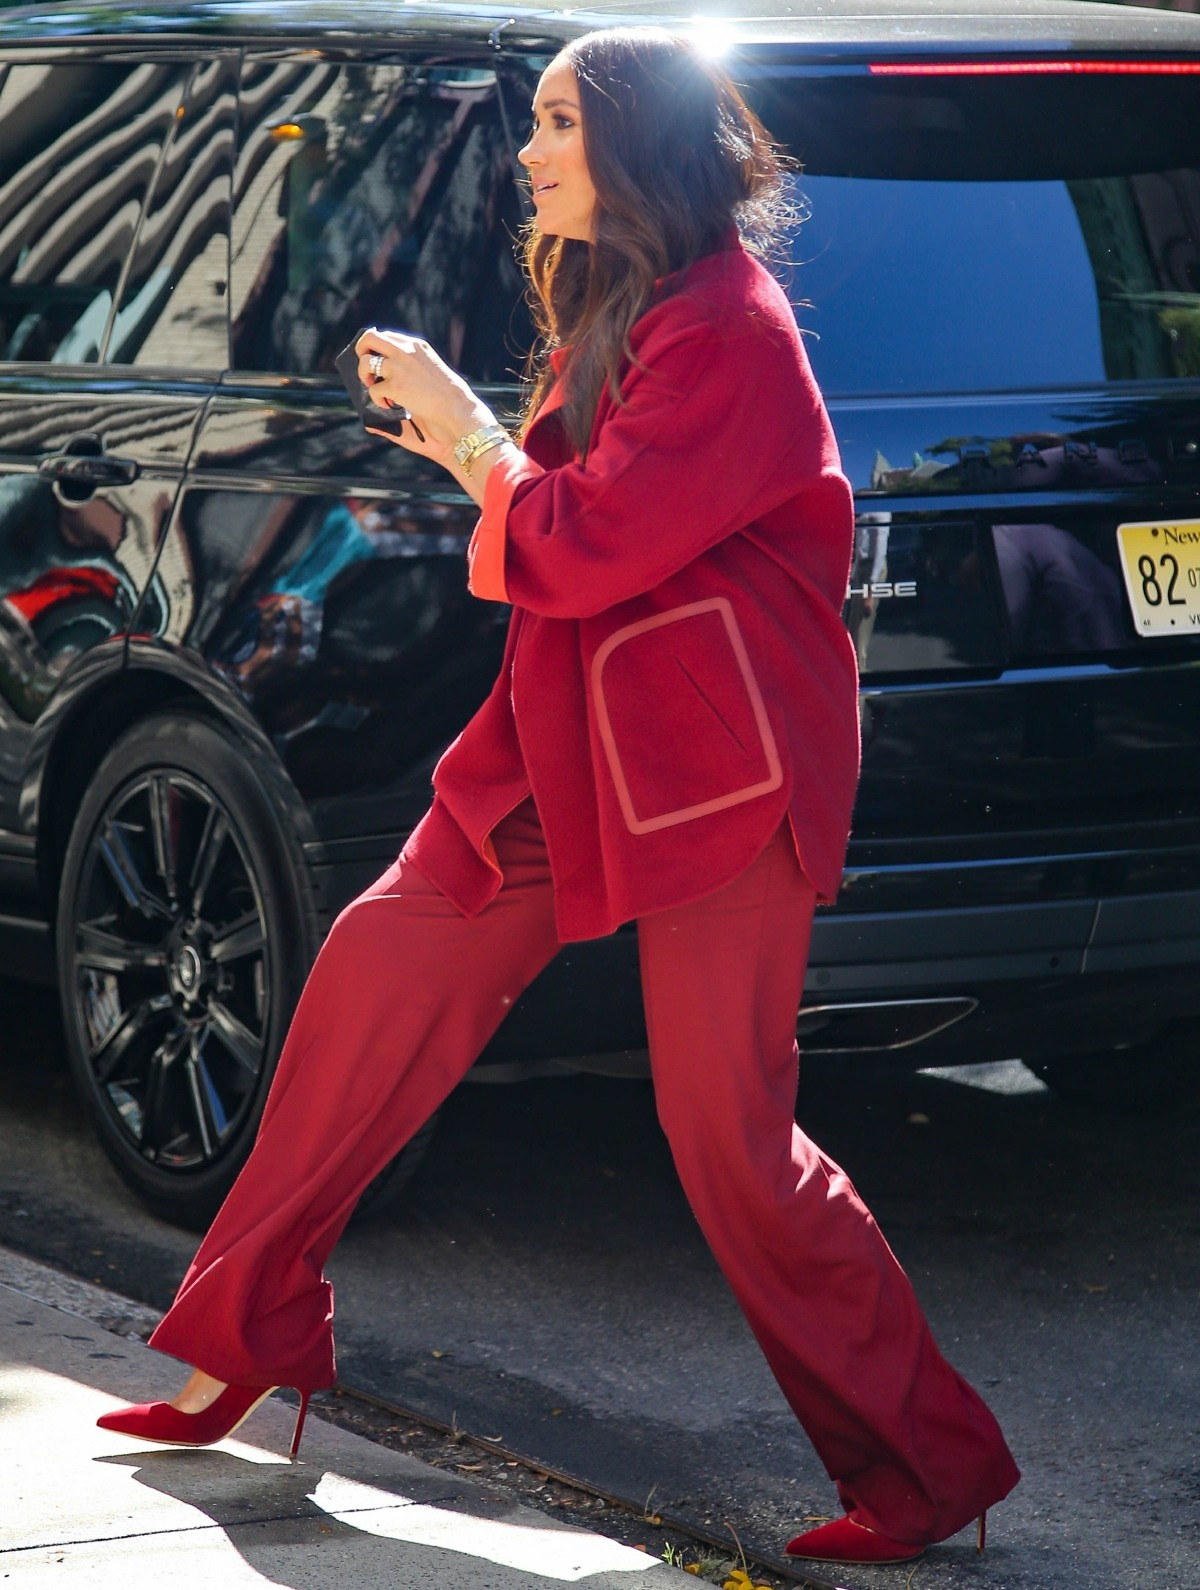 Meghan Markle looks stylish in a red velvet suit as she arrives at a Harlem elementary school